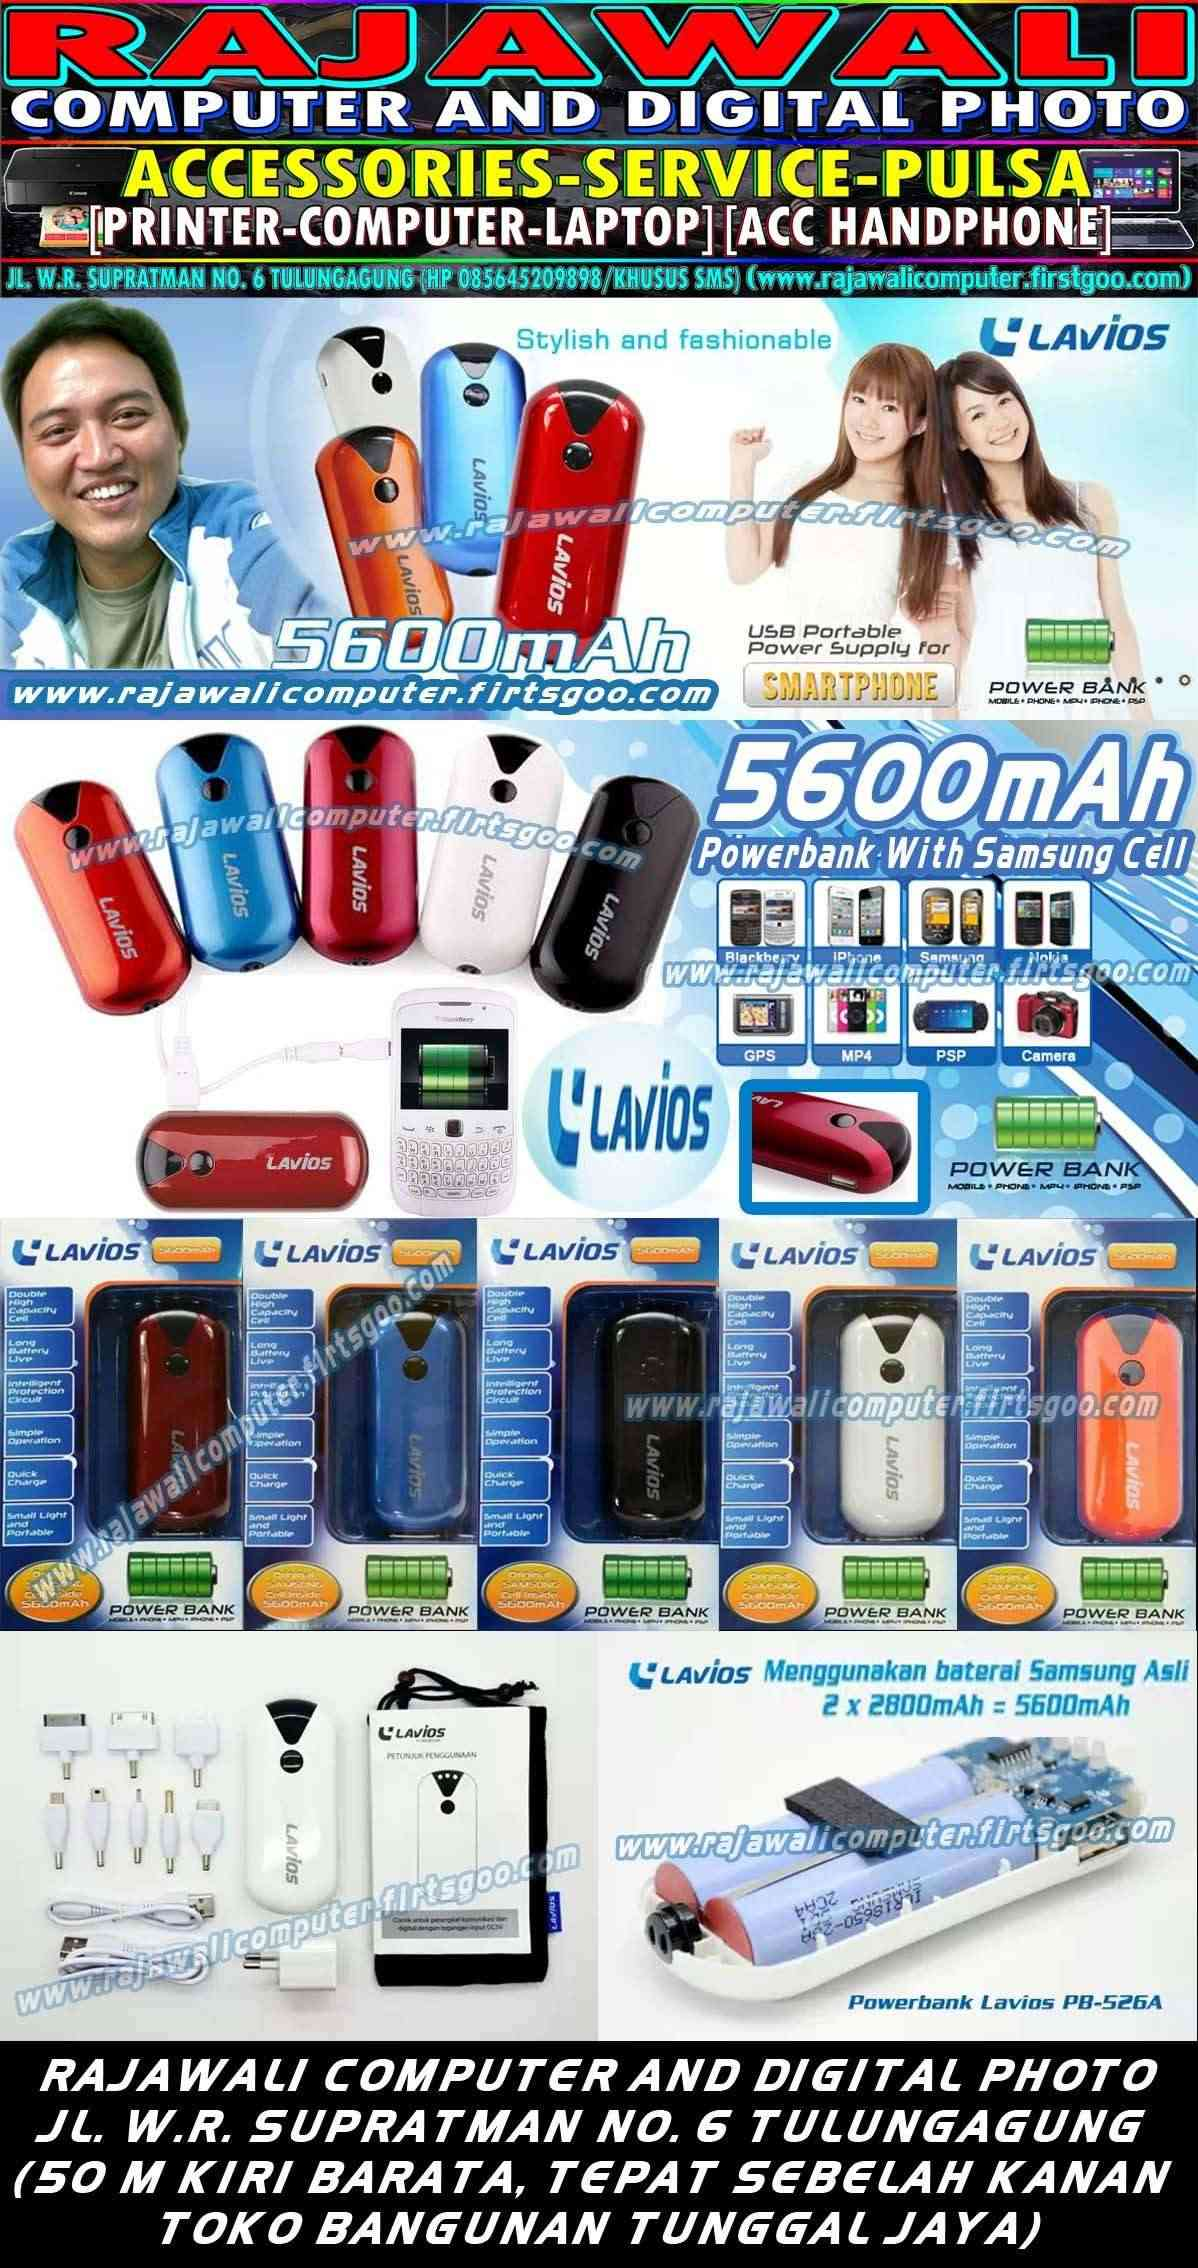 LAVIOS POWERBANK WITH SAMSUNG CELL 5600MAH CAPSULE HIGH CAPACITY AND QUALITY